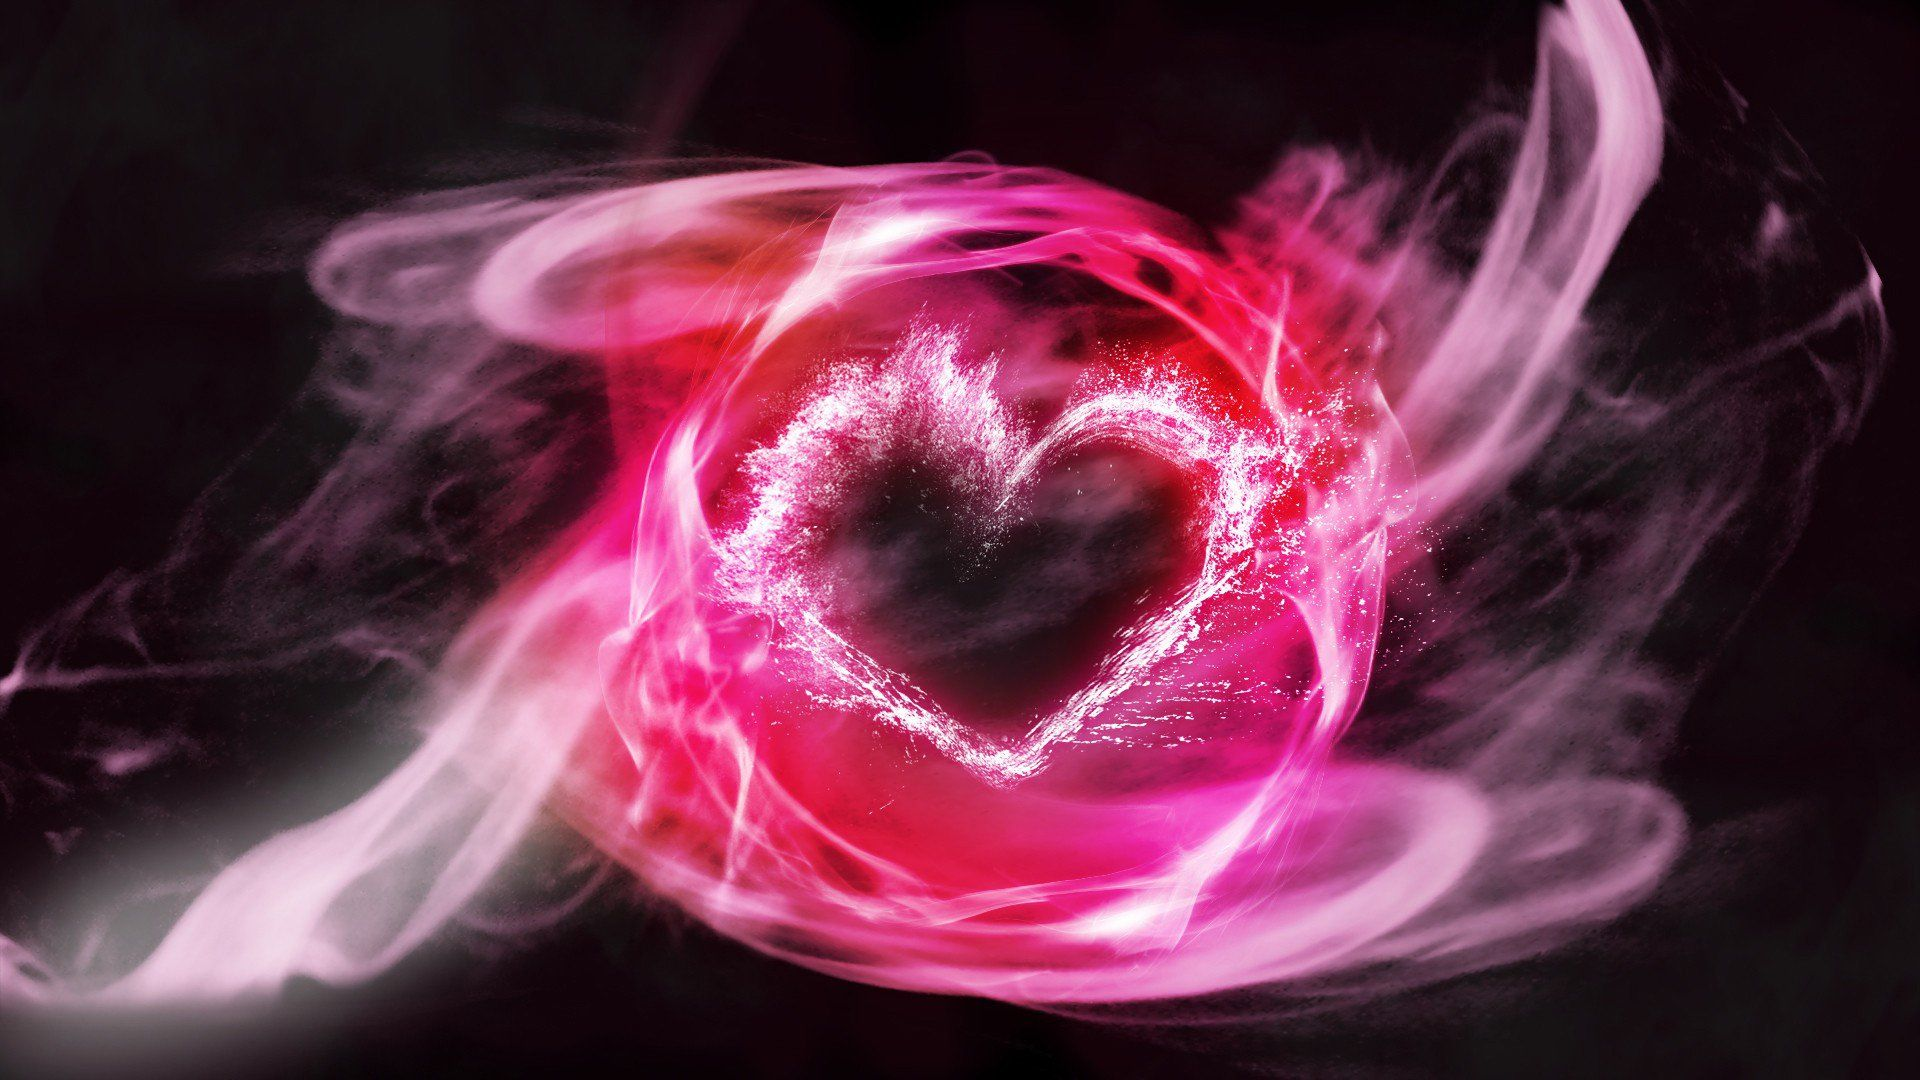 Flaming Heart Images, Wallpapers Images Of Fire